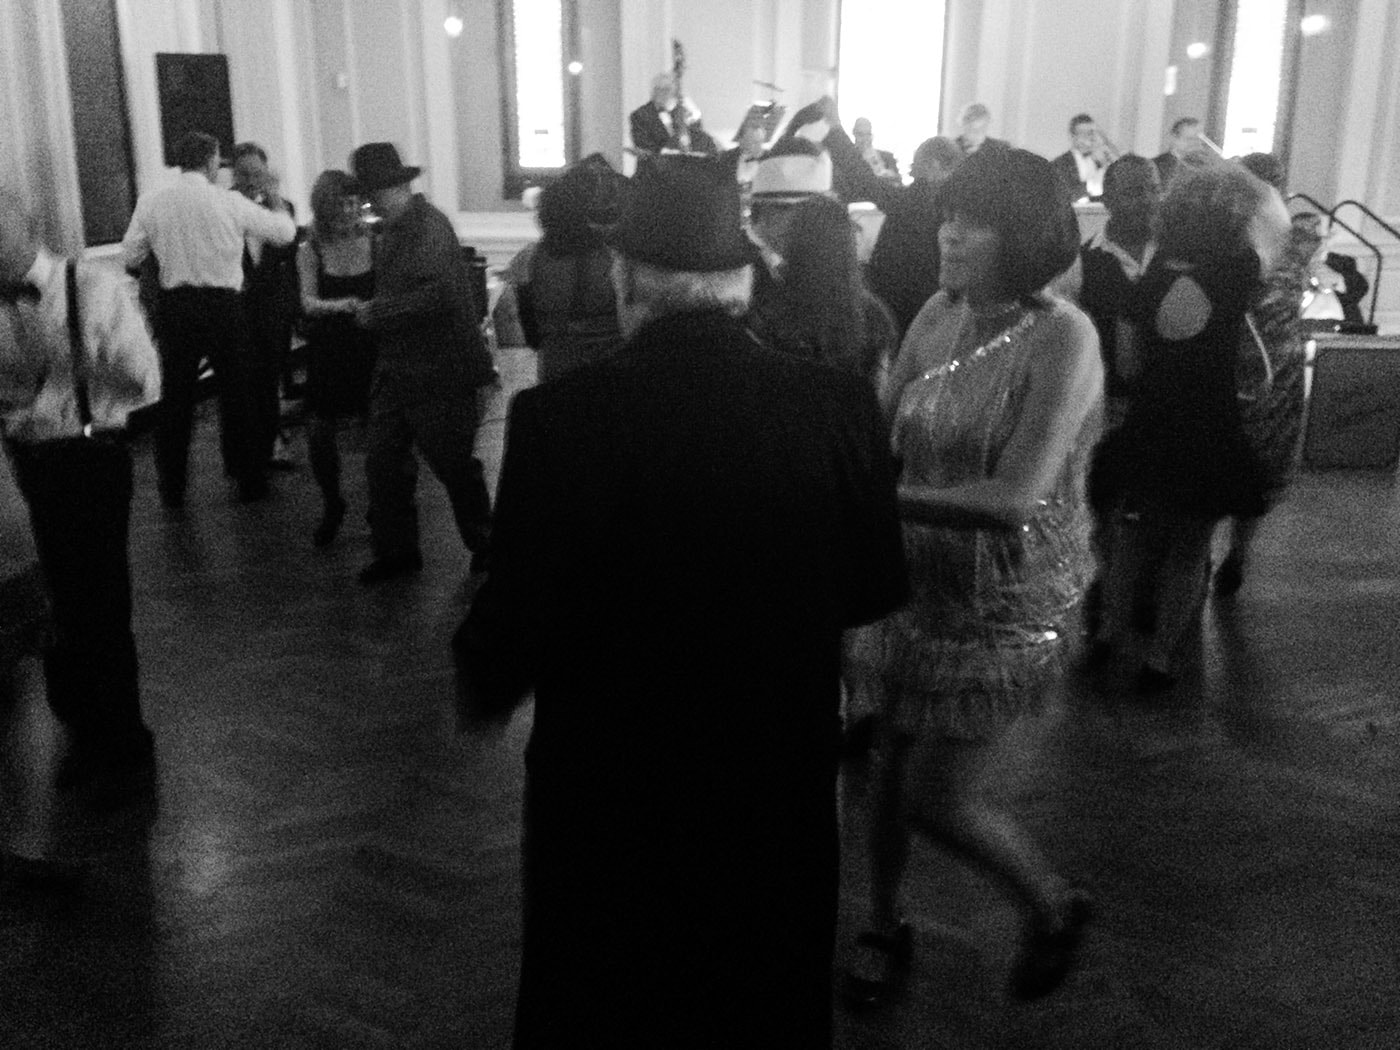 The Last Speakeasy on the Eve of Repeal 1920s party at the Chicago History Museum